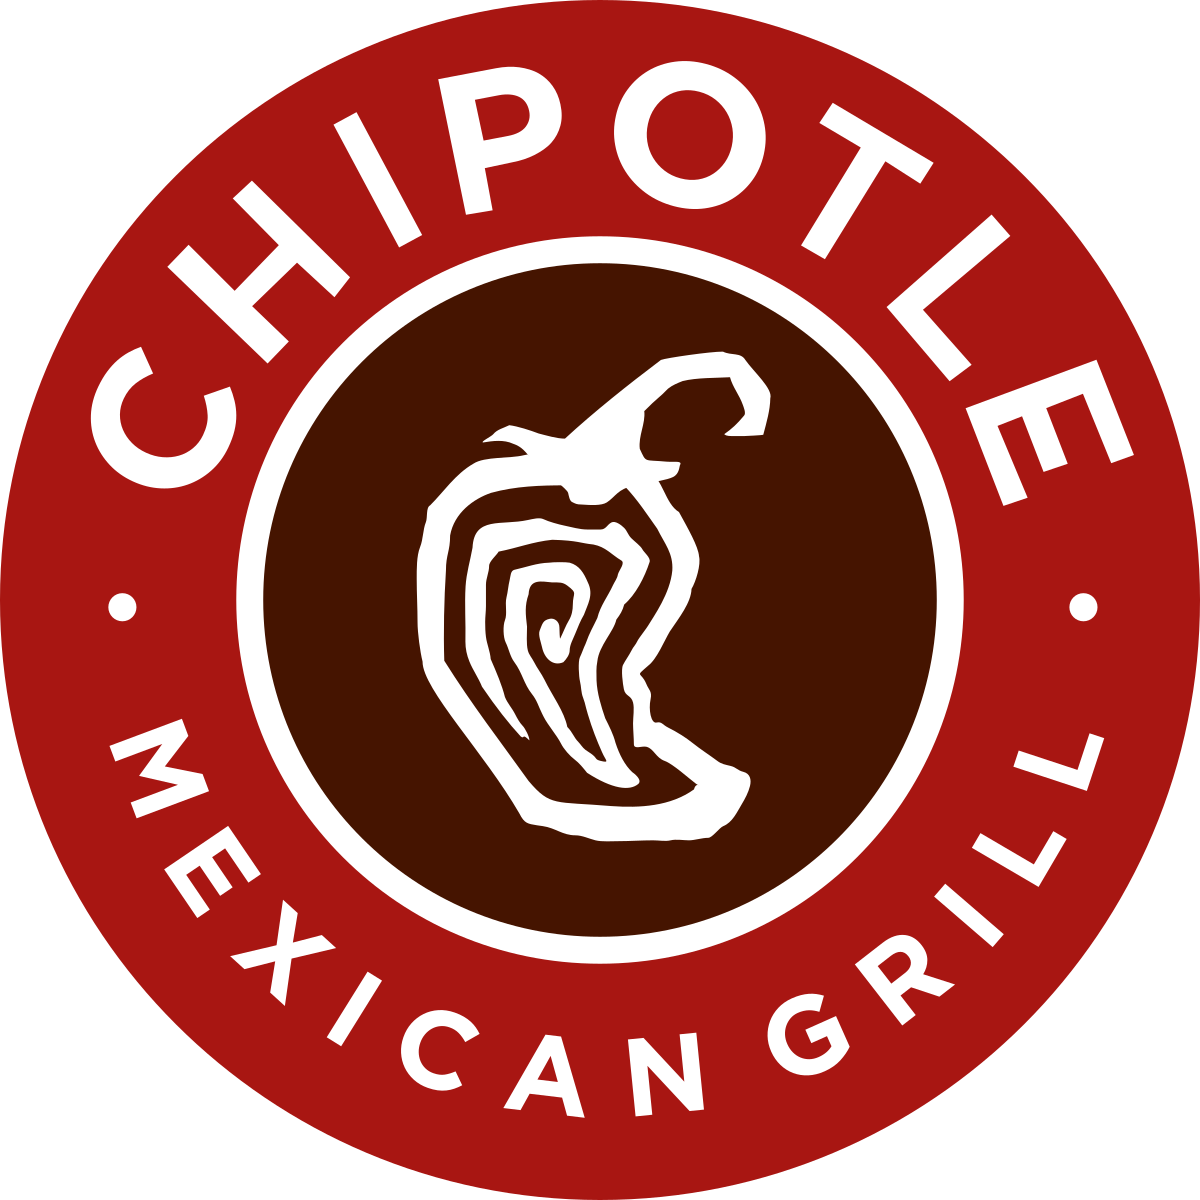 Restaurants clipart restaurant sign. Chipotle mexican grill wikipedia